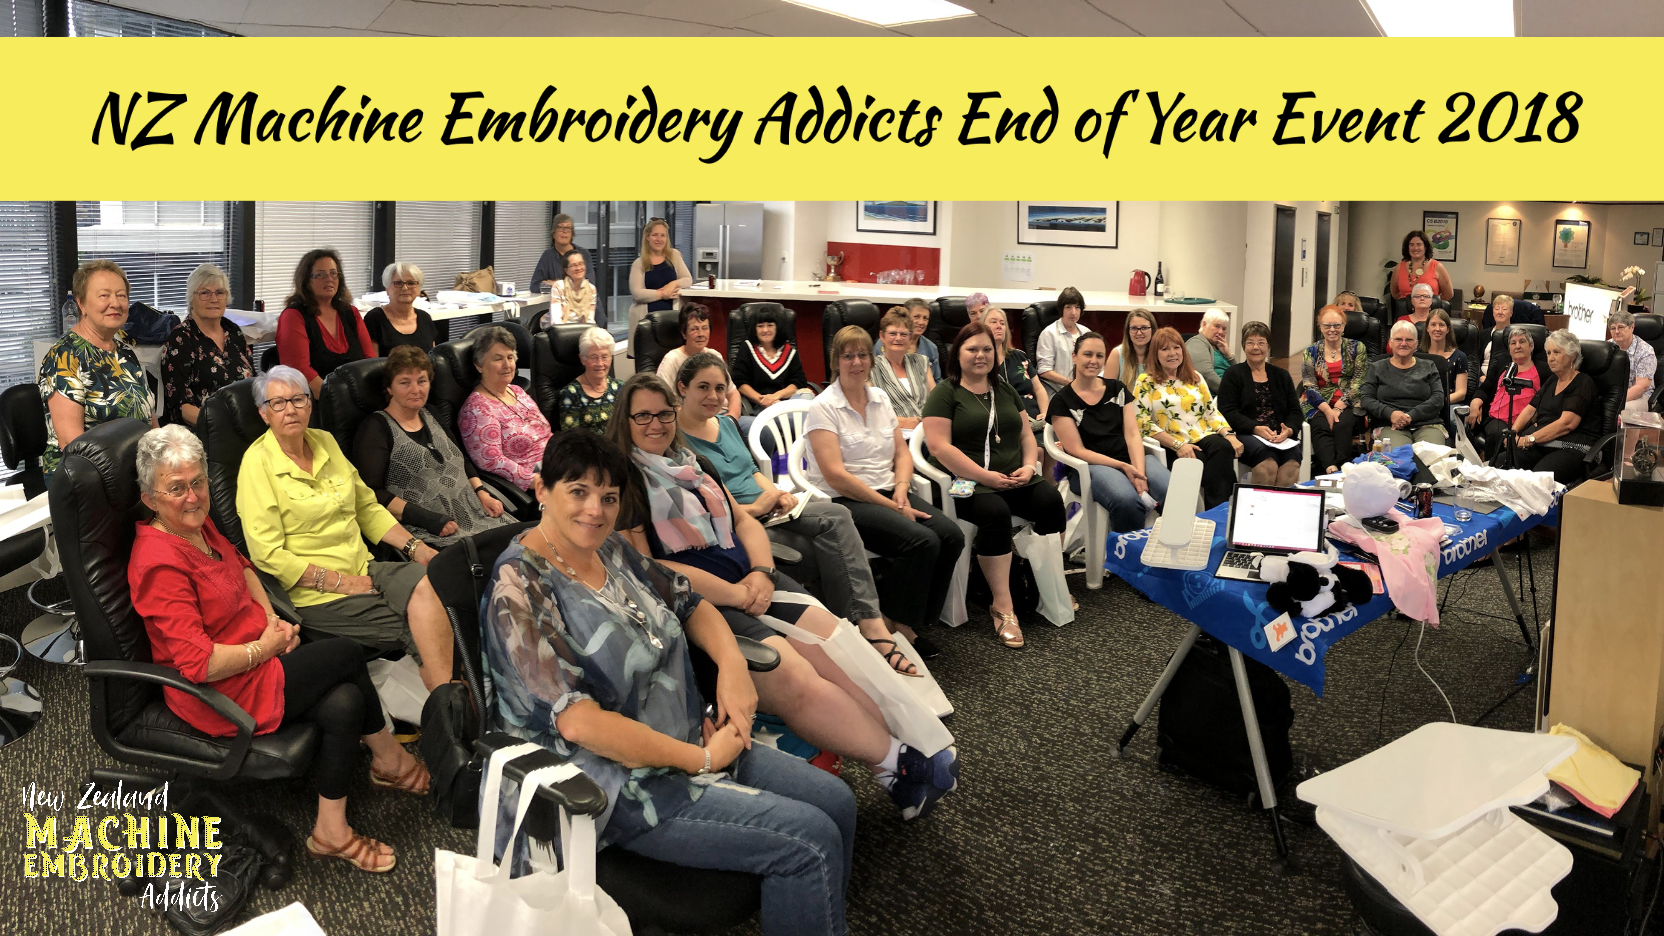 NZ Machine Embroidery Addicts End of Year Event 2018